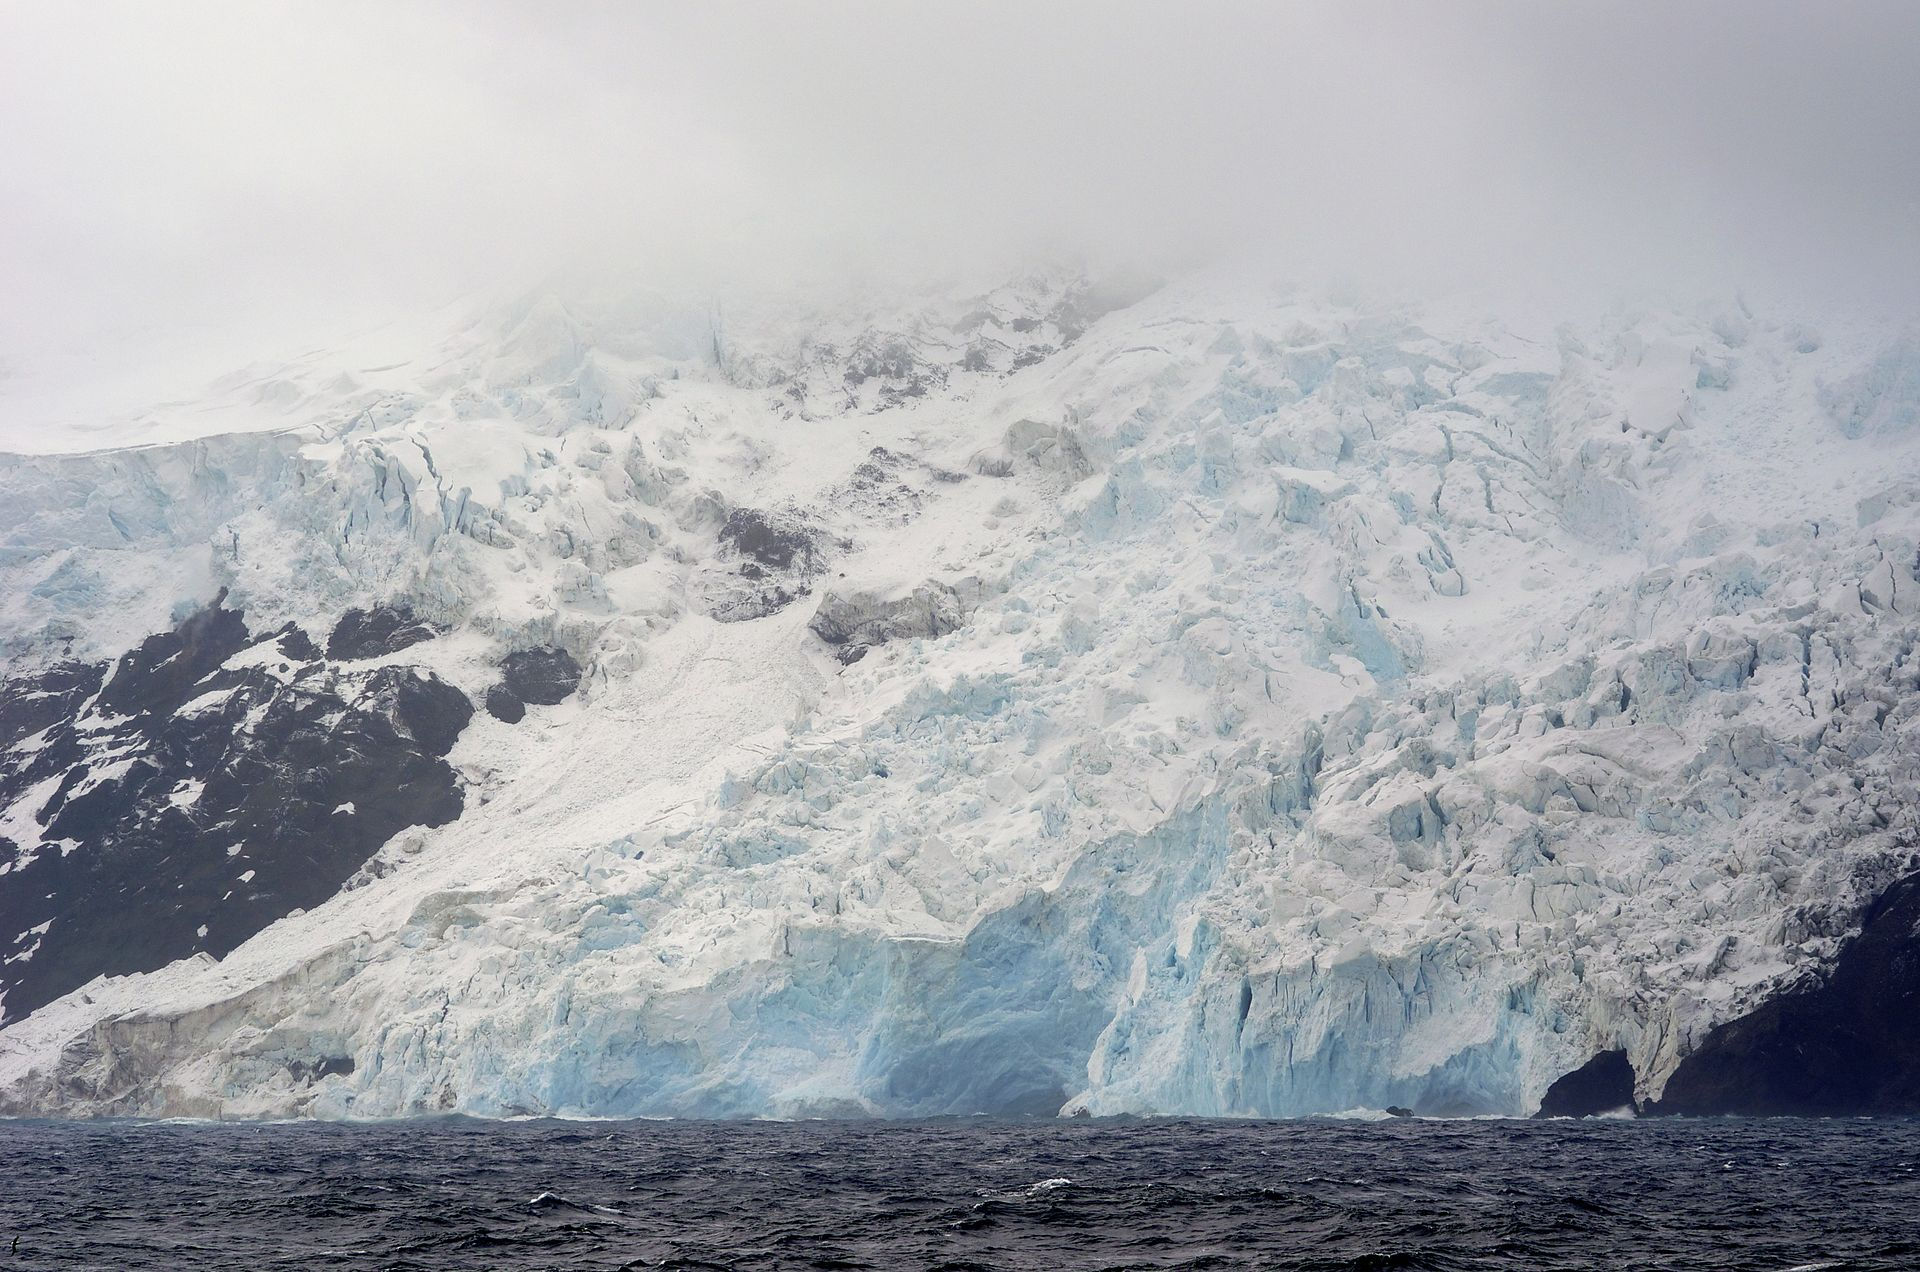 Glacier on Bouvet Island's west coast. François Guerraz CC BY-SA 3.0